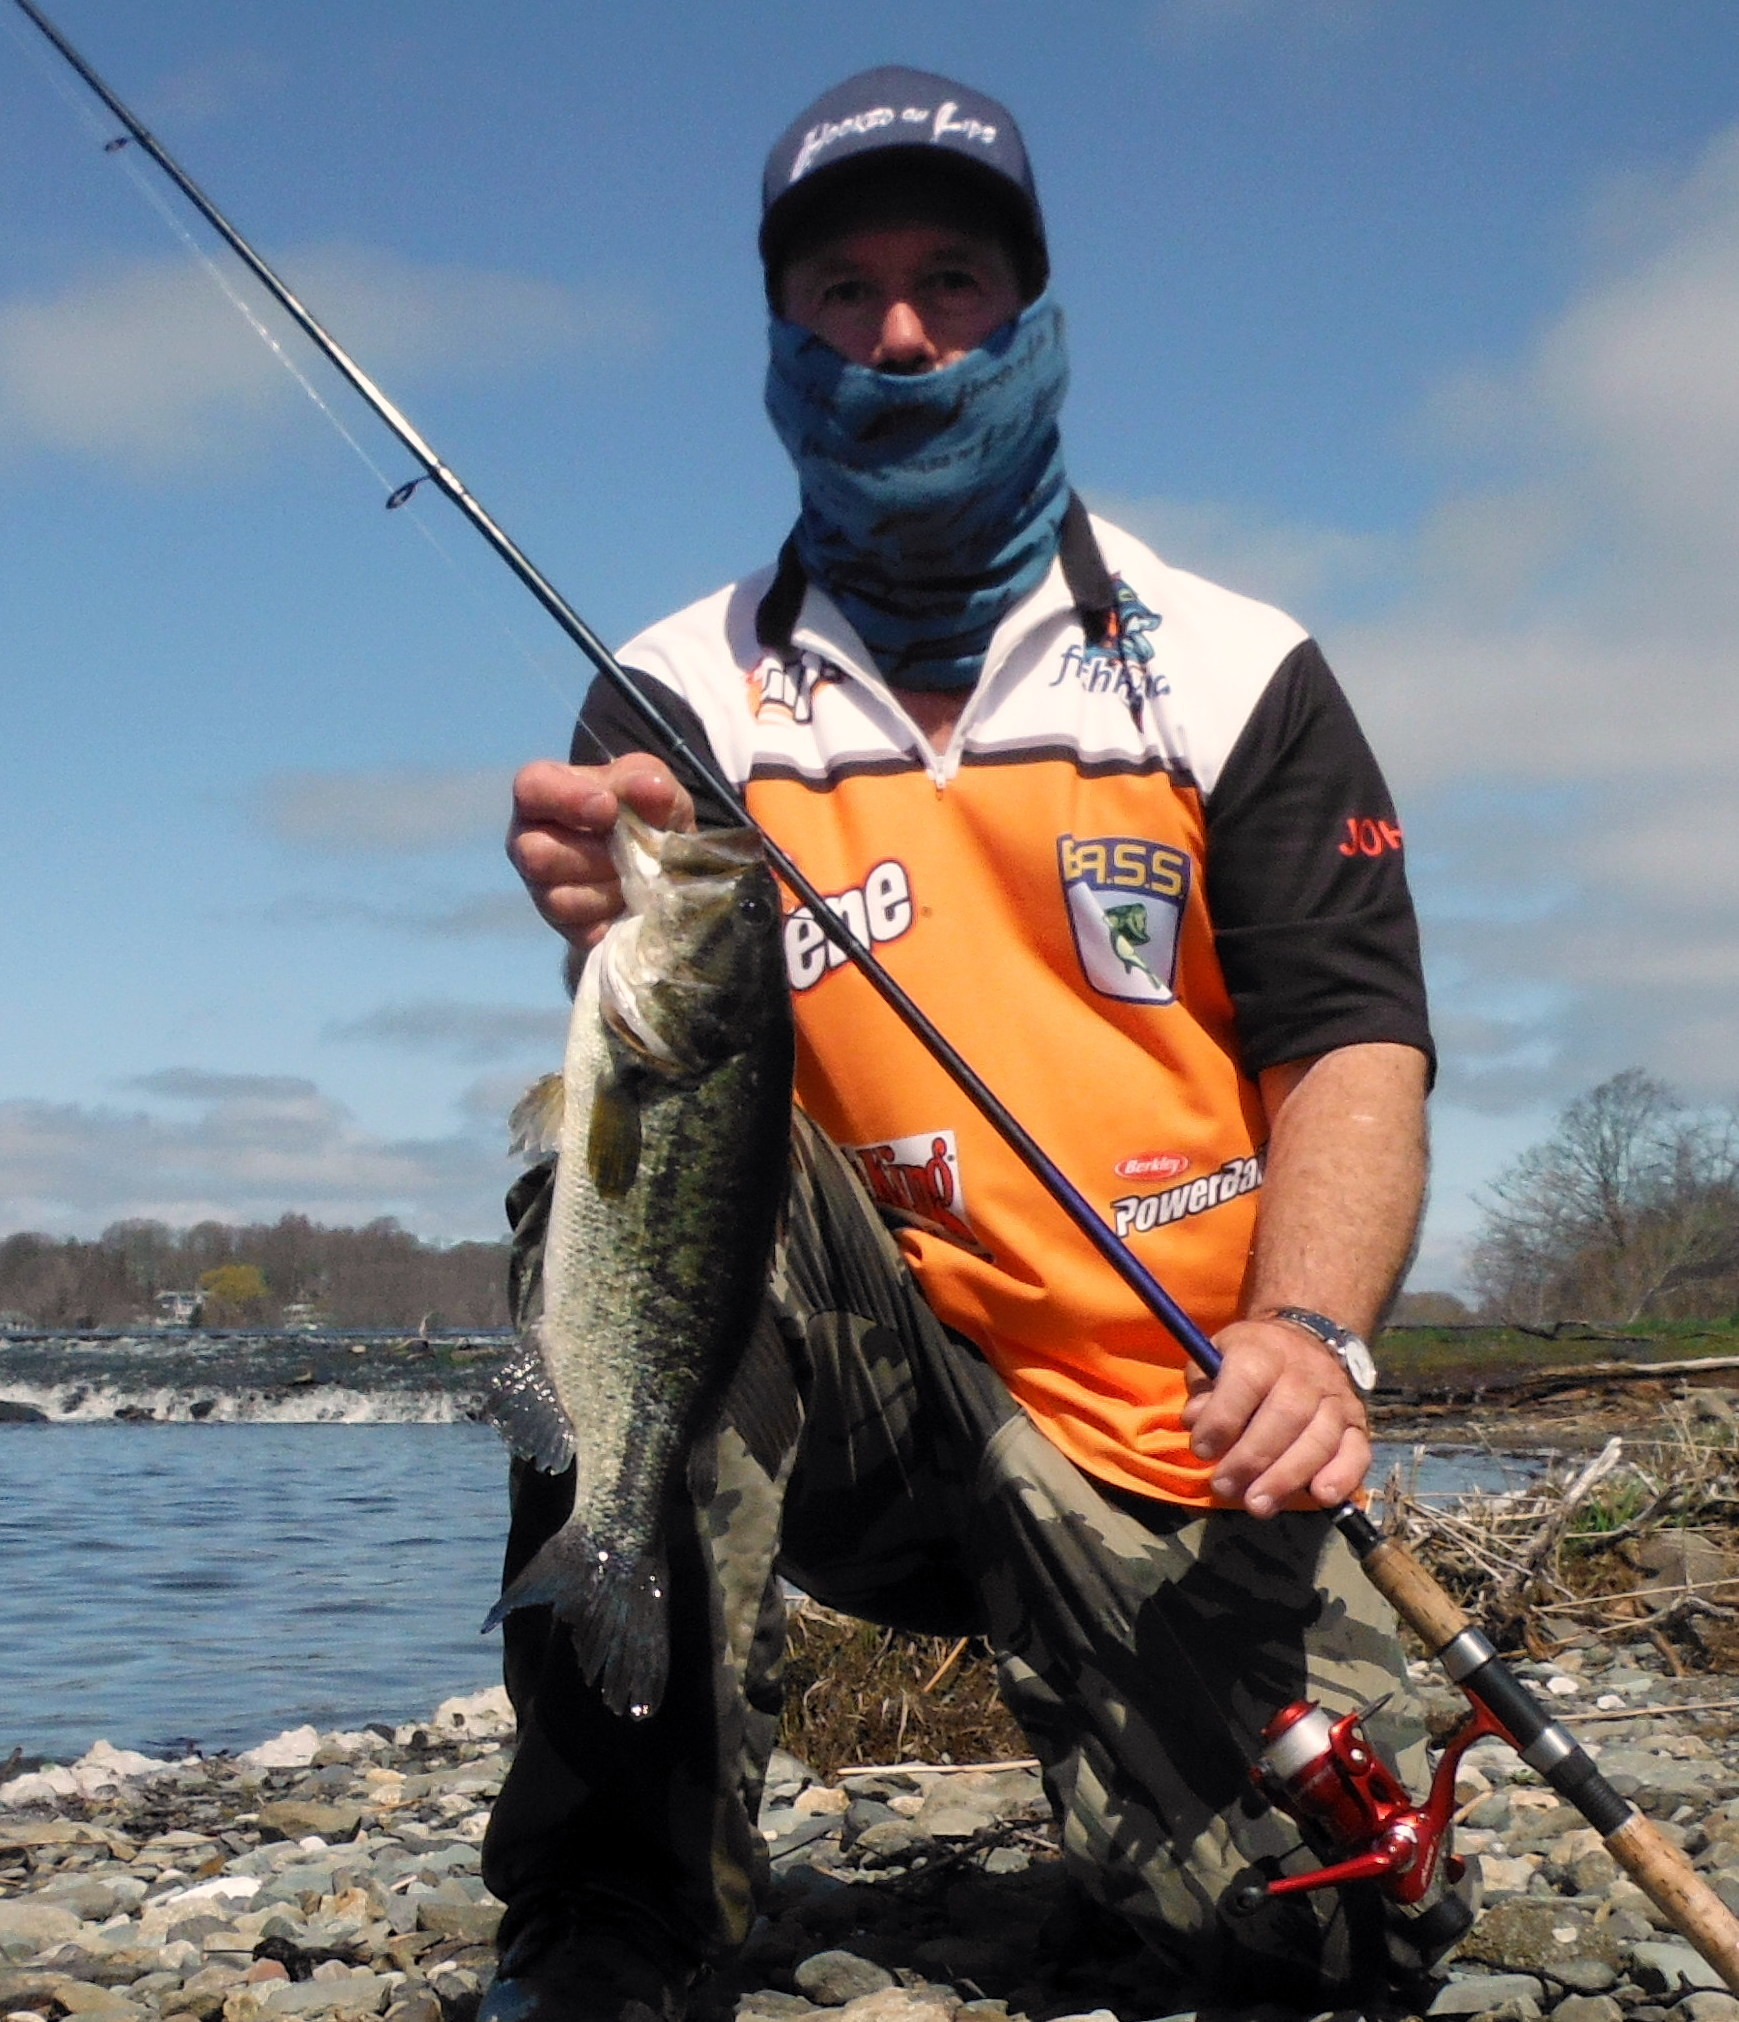 John Migliori landed this 17 inch largemouth bass on Aquidneck Island using a Shadeycreek Spinning Lure.